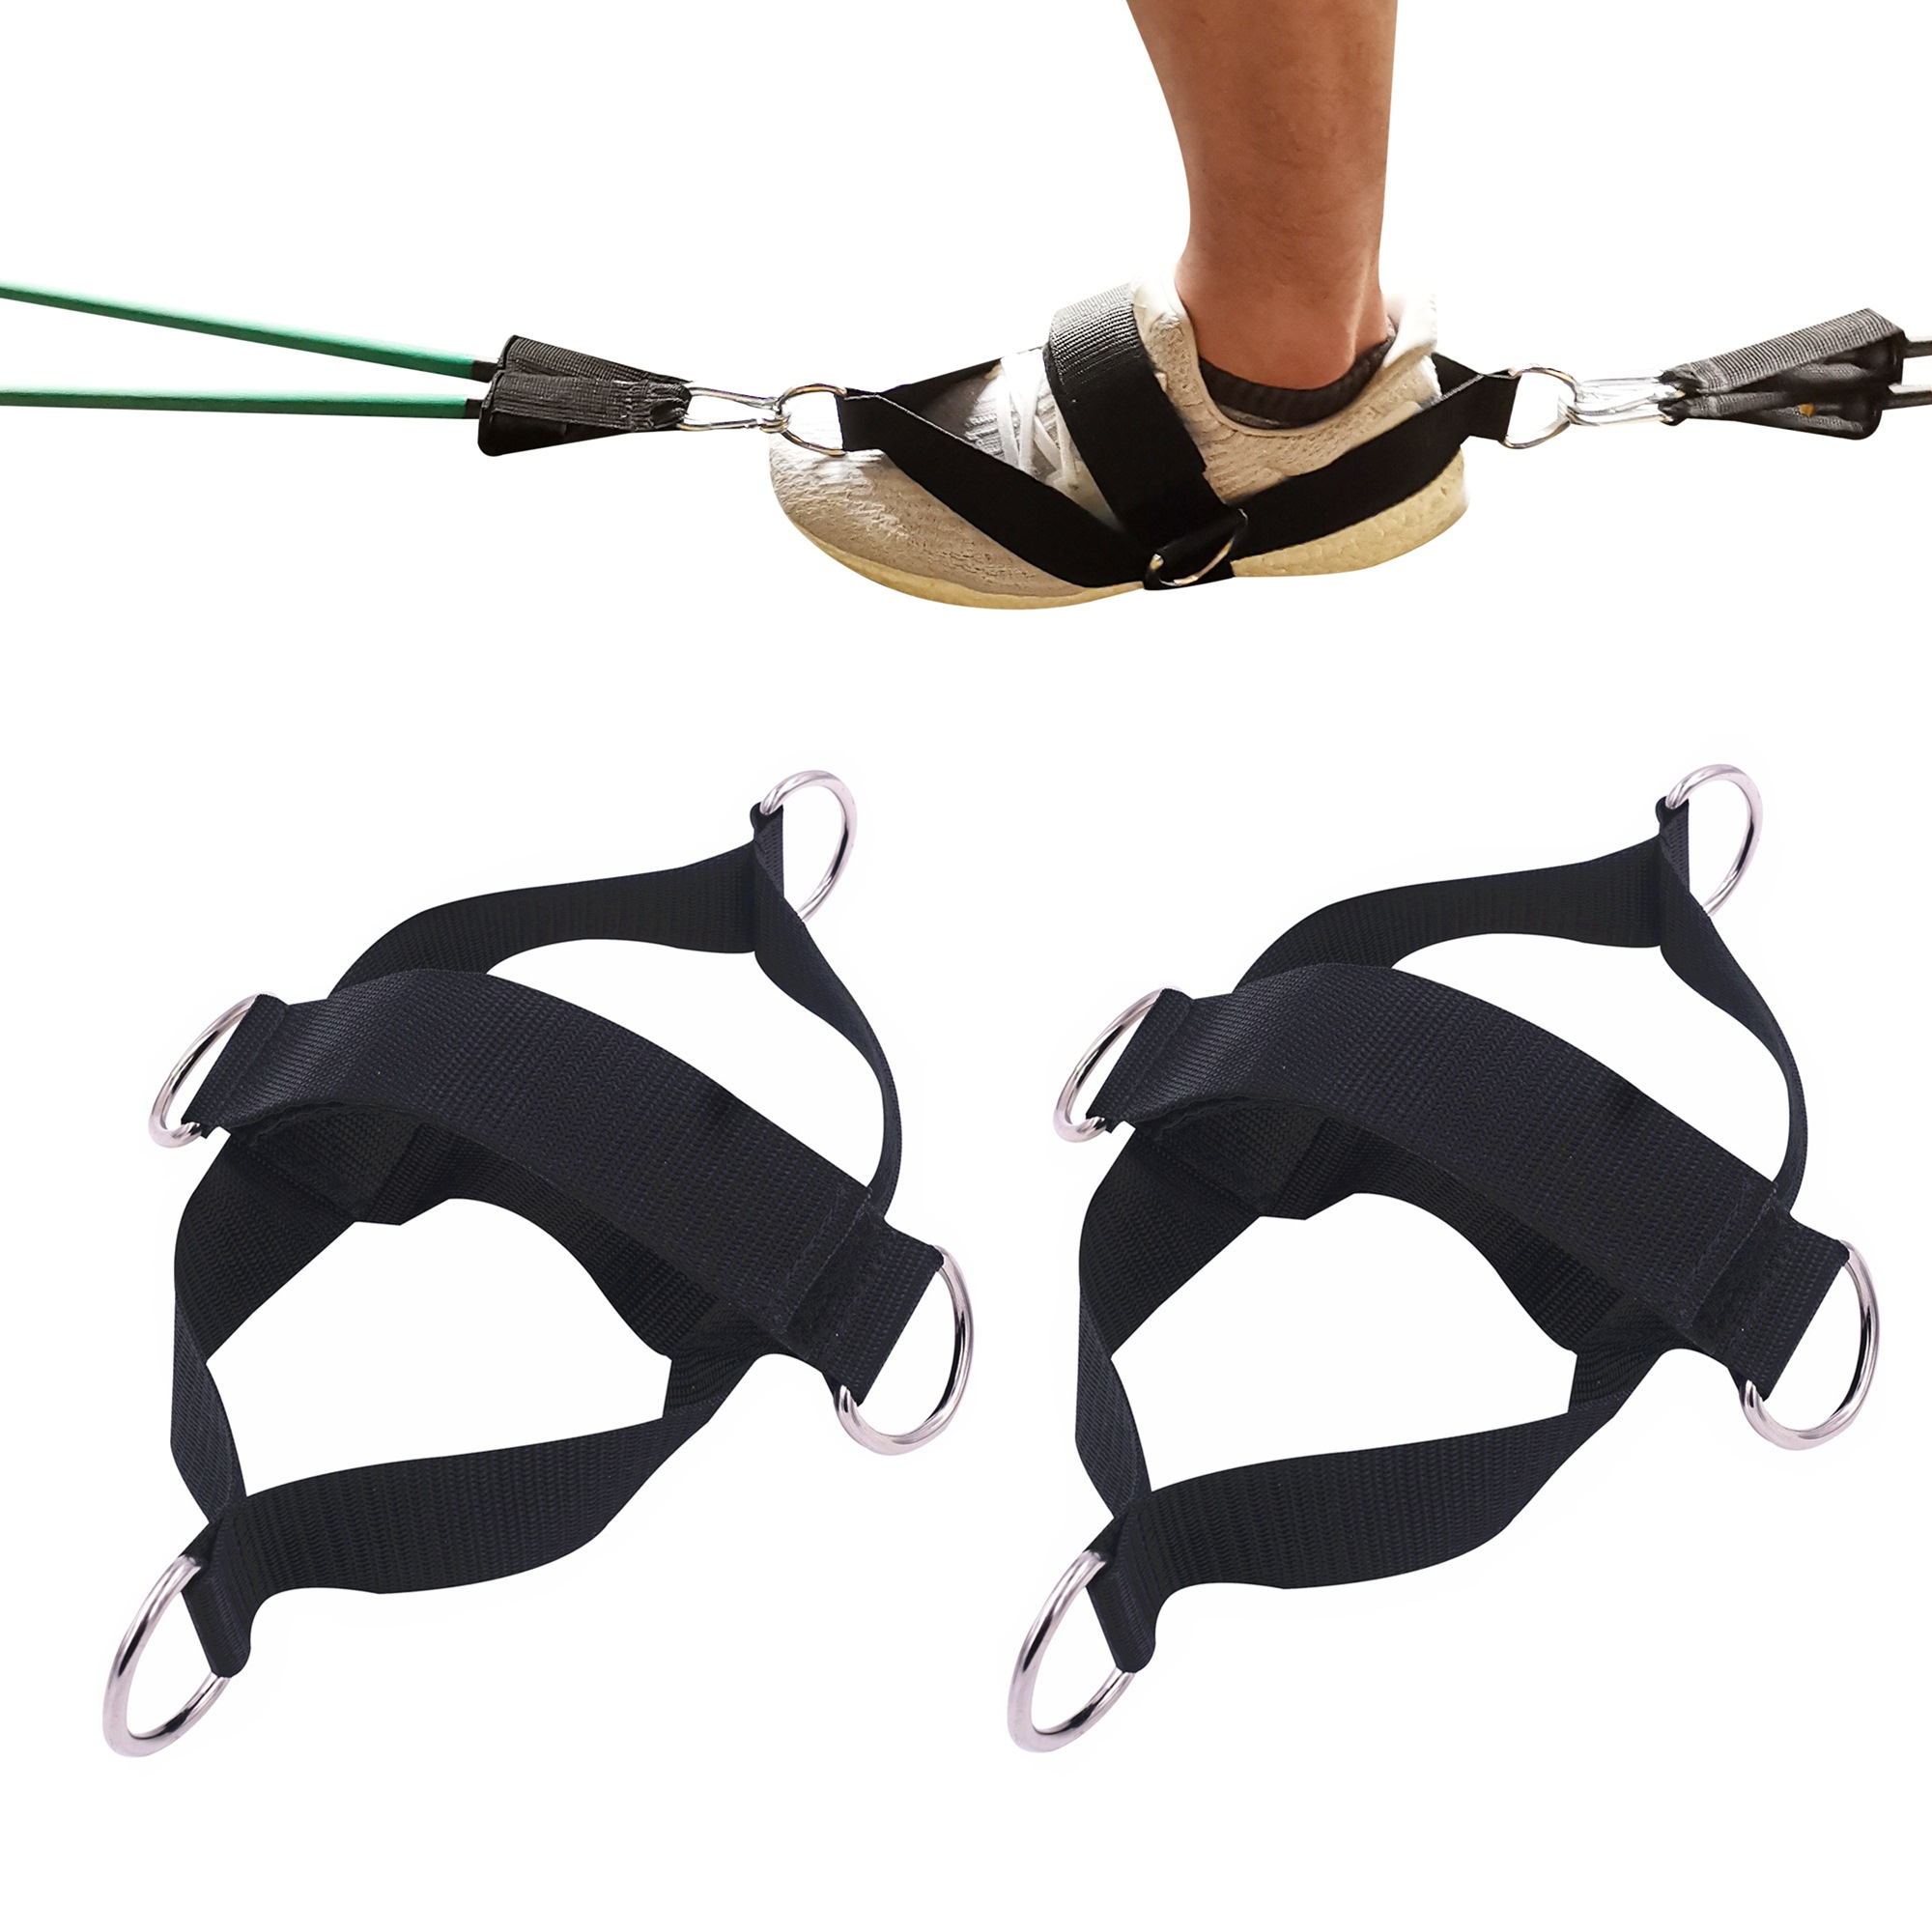 2 PCS Fitness Attachment Ankle Straps Glute Kickback Leg Exercise Abductors  Resistance for Cable Machines Shoe Cover Pull Belt